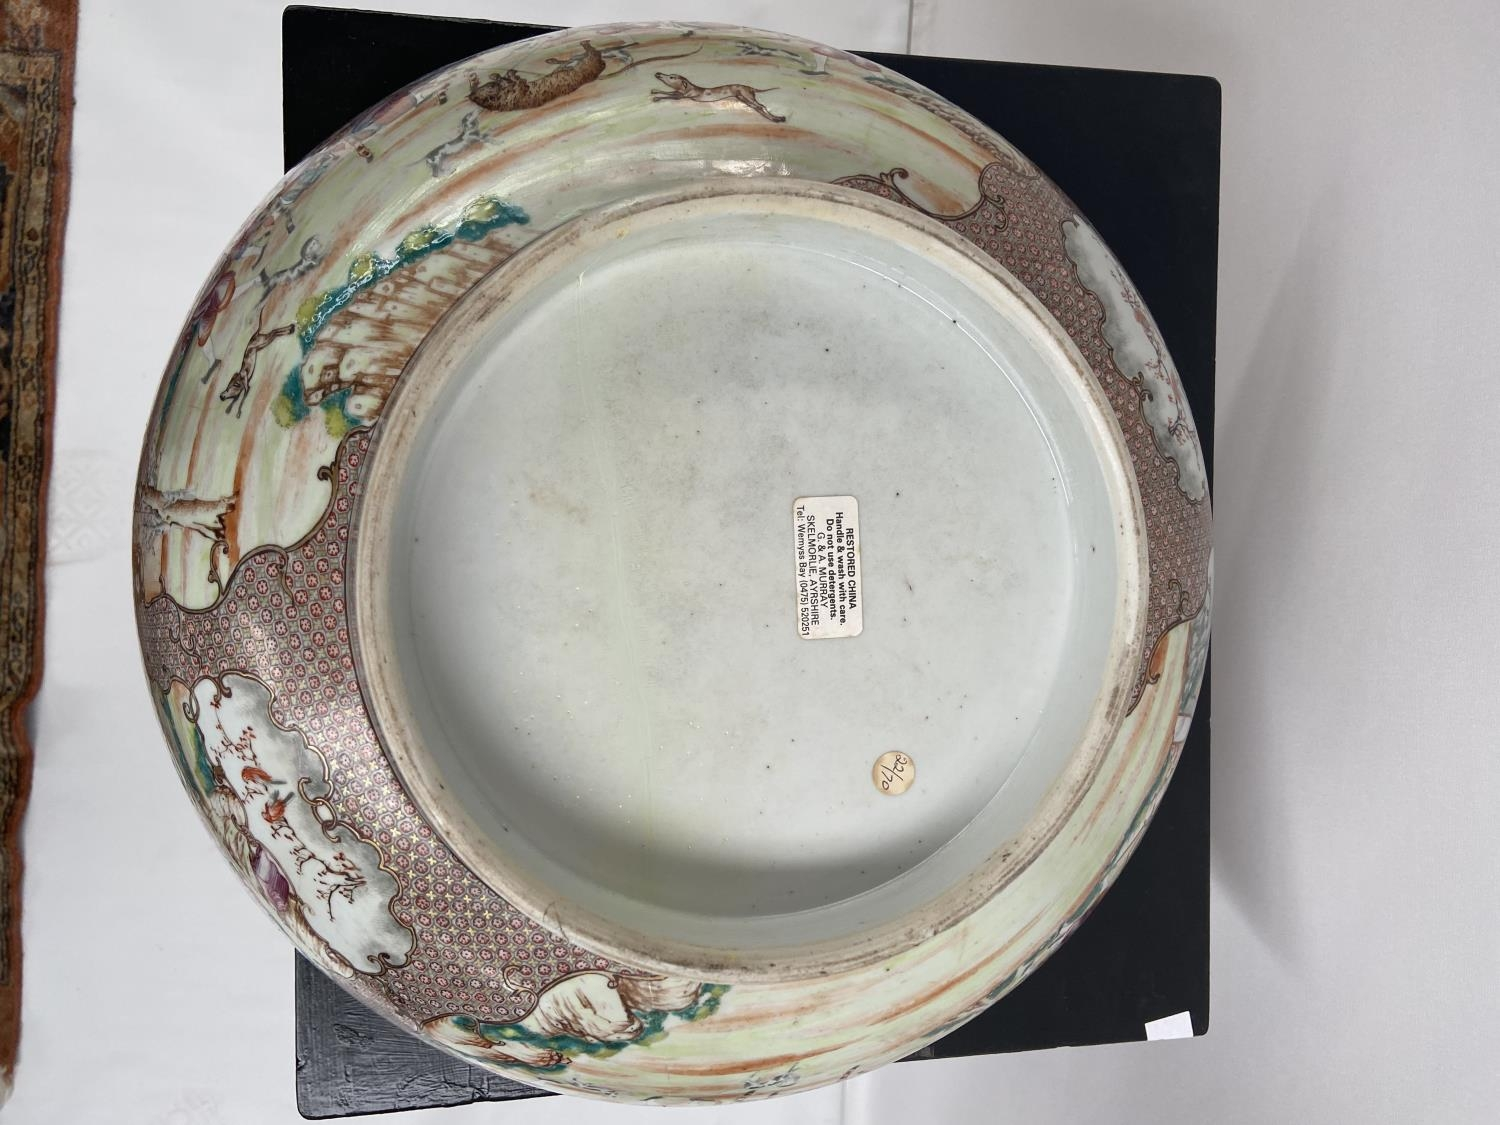 A LARGE 19TH CENTURY CHINESE HAND PAINTED BOWL. EXTERIOR DEPICTS CHINESE HUNTING SCENE PANELS. THE - Image 33 of 39